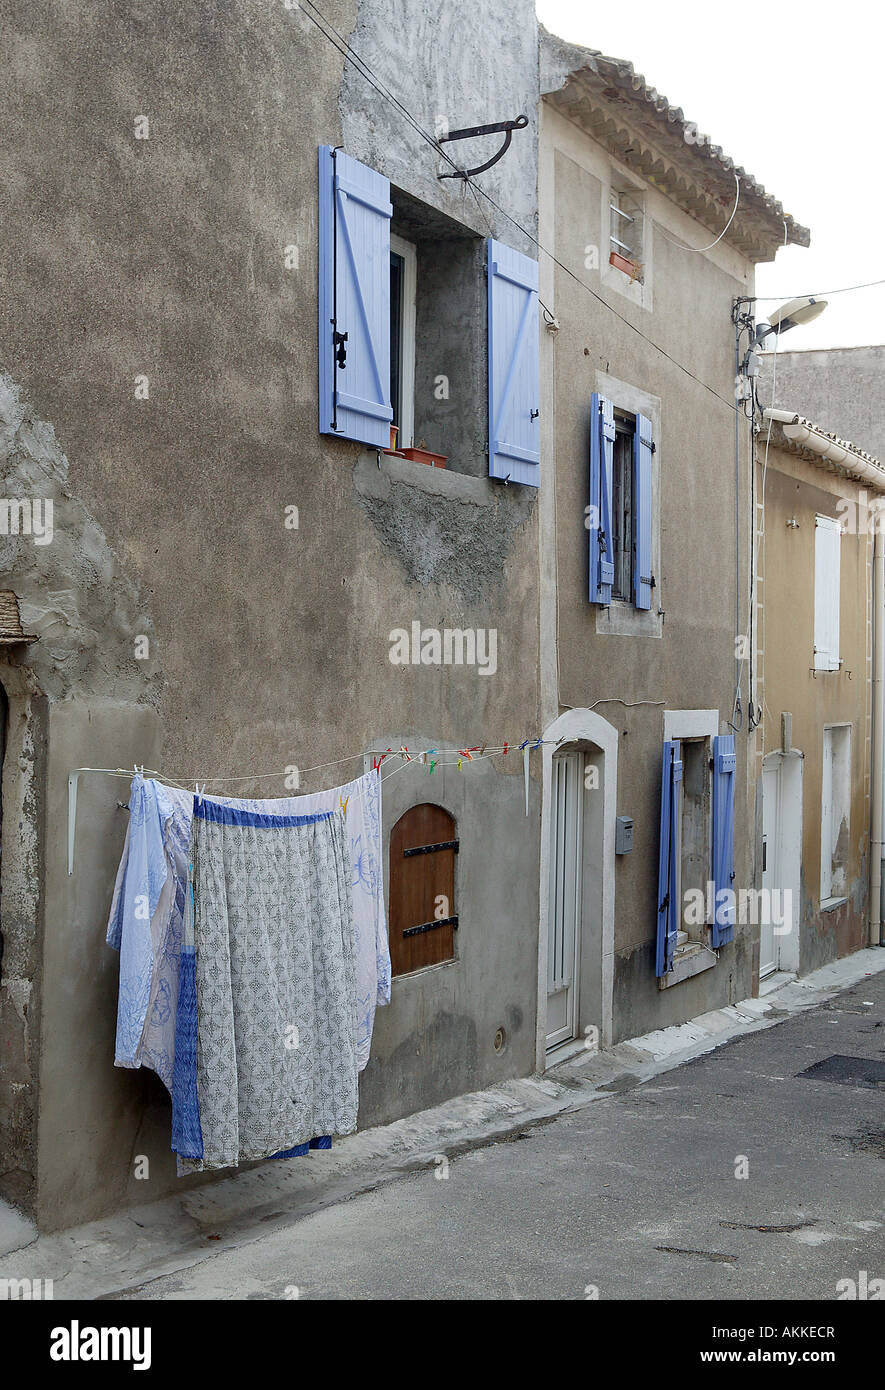 a traditional european village street scence with pretty blue window shutters and washing hanging to dry in the - Stock Image